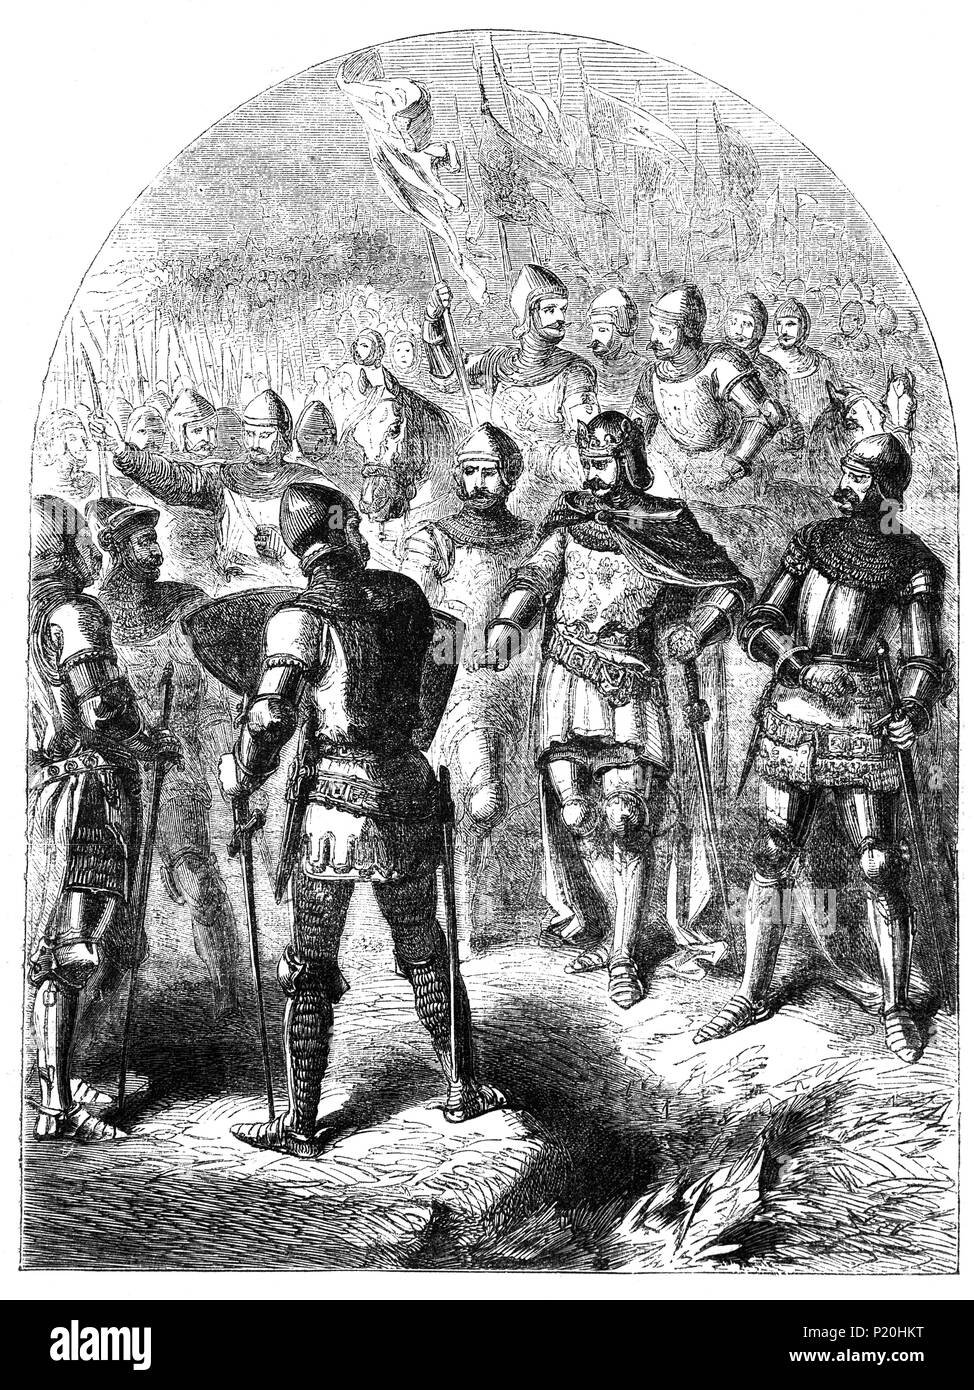 The Battle of Agincourt, 25 October 1415, was a major English victory in the Hundred Years' War that took place some 40 km south of Calais. The battle is notable for the use of the English longbow in large numbers, with the English and Welsh archers forming up to 80 percent of Henry's army. The decimation of the French cavalry at their hands is regarded as an indicator of the decline of cavalry and the beginning of the dominance of ranged weapons on the battlefield. - Stock Image